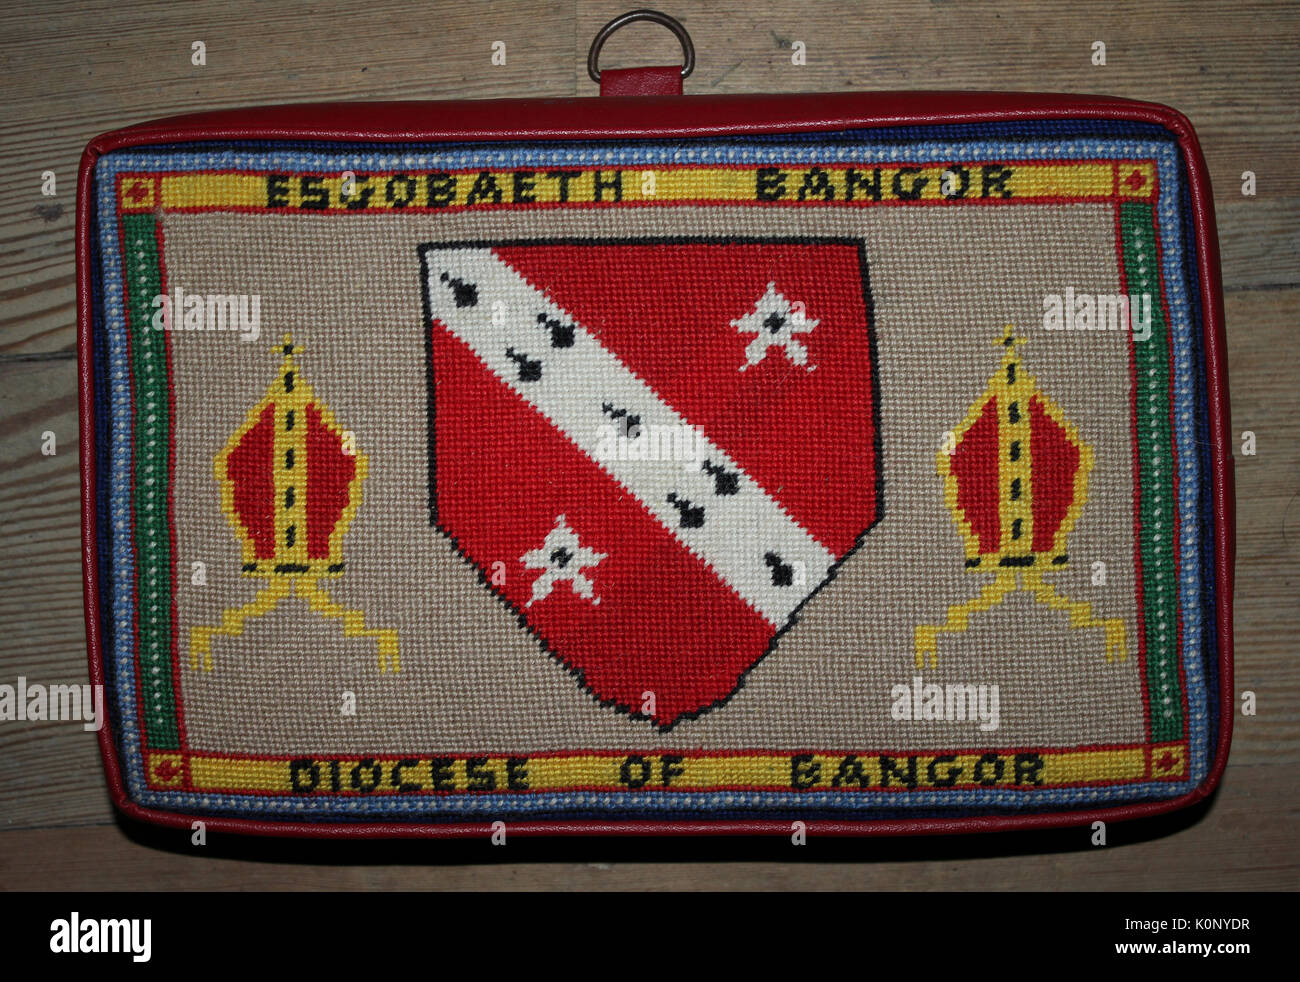 Prayer Cushion with Diocese of Bangor Coat Of Arms Design - Stock Image